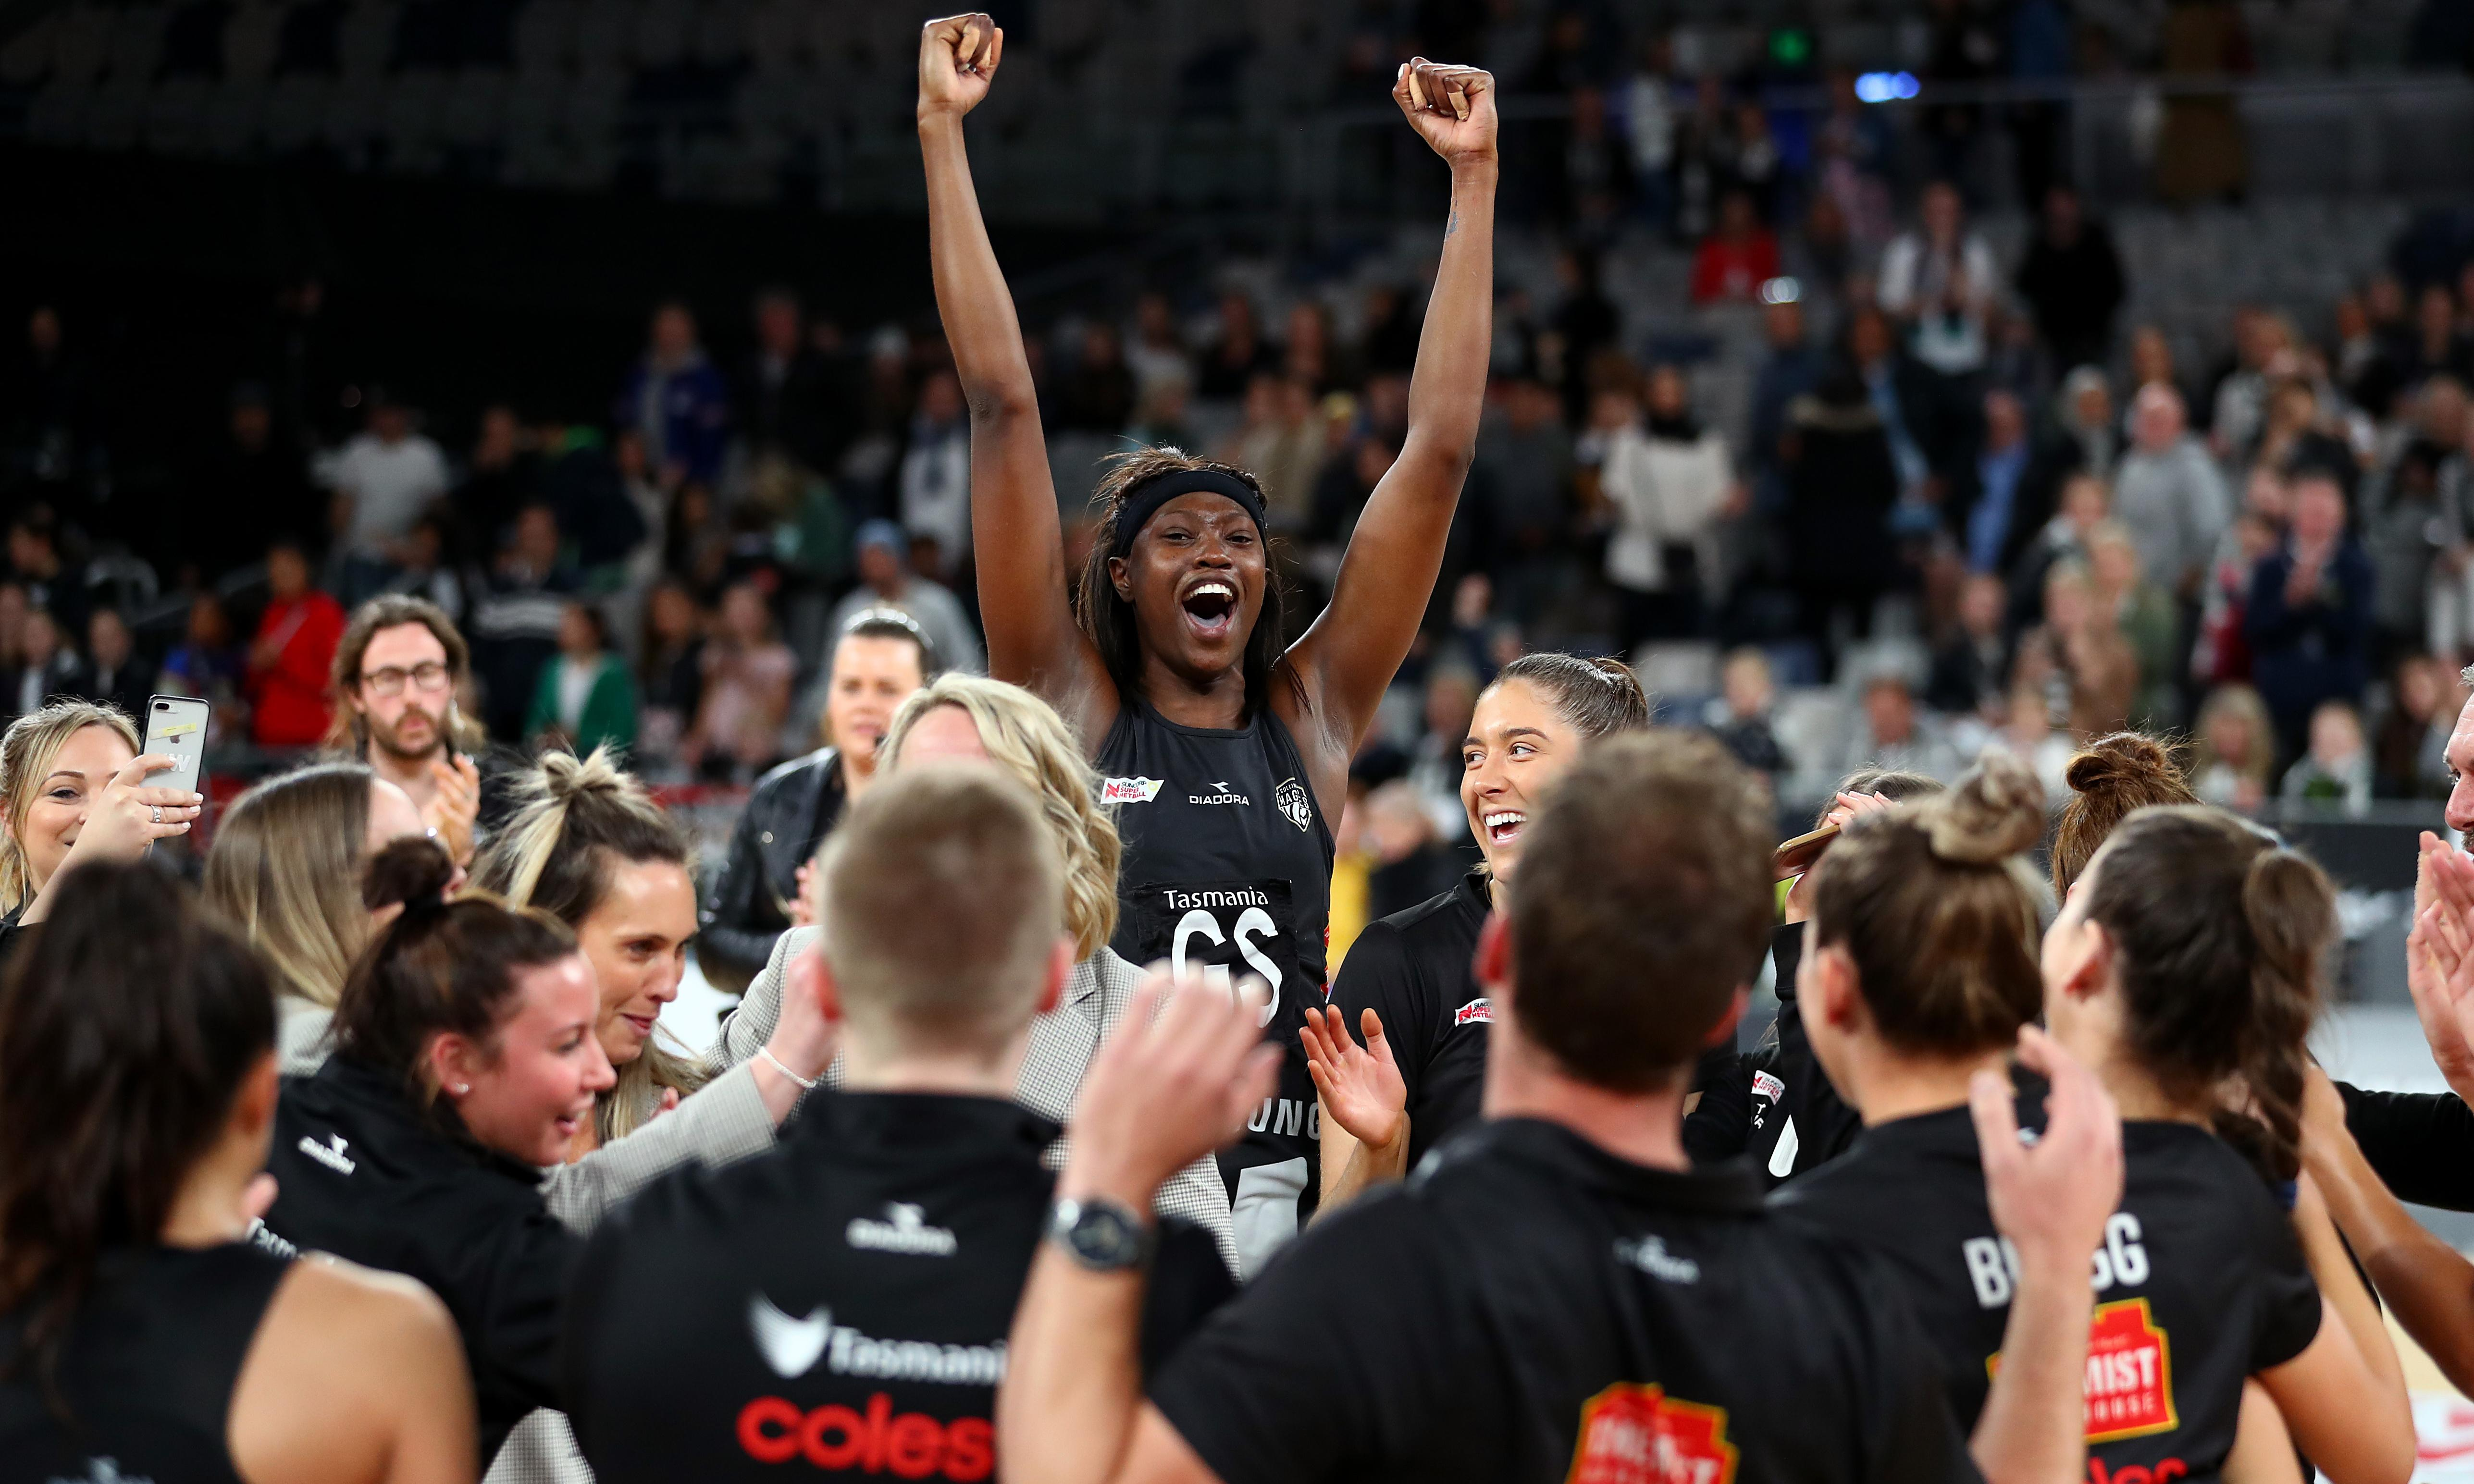 Believing in Collingwood is tempting once again after Pies squeeze into Super Netball finals